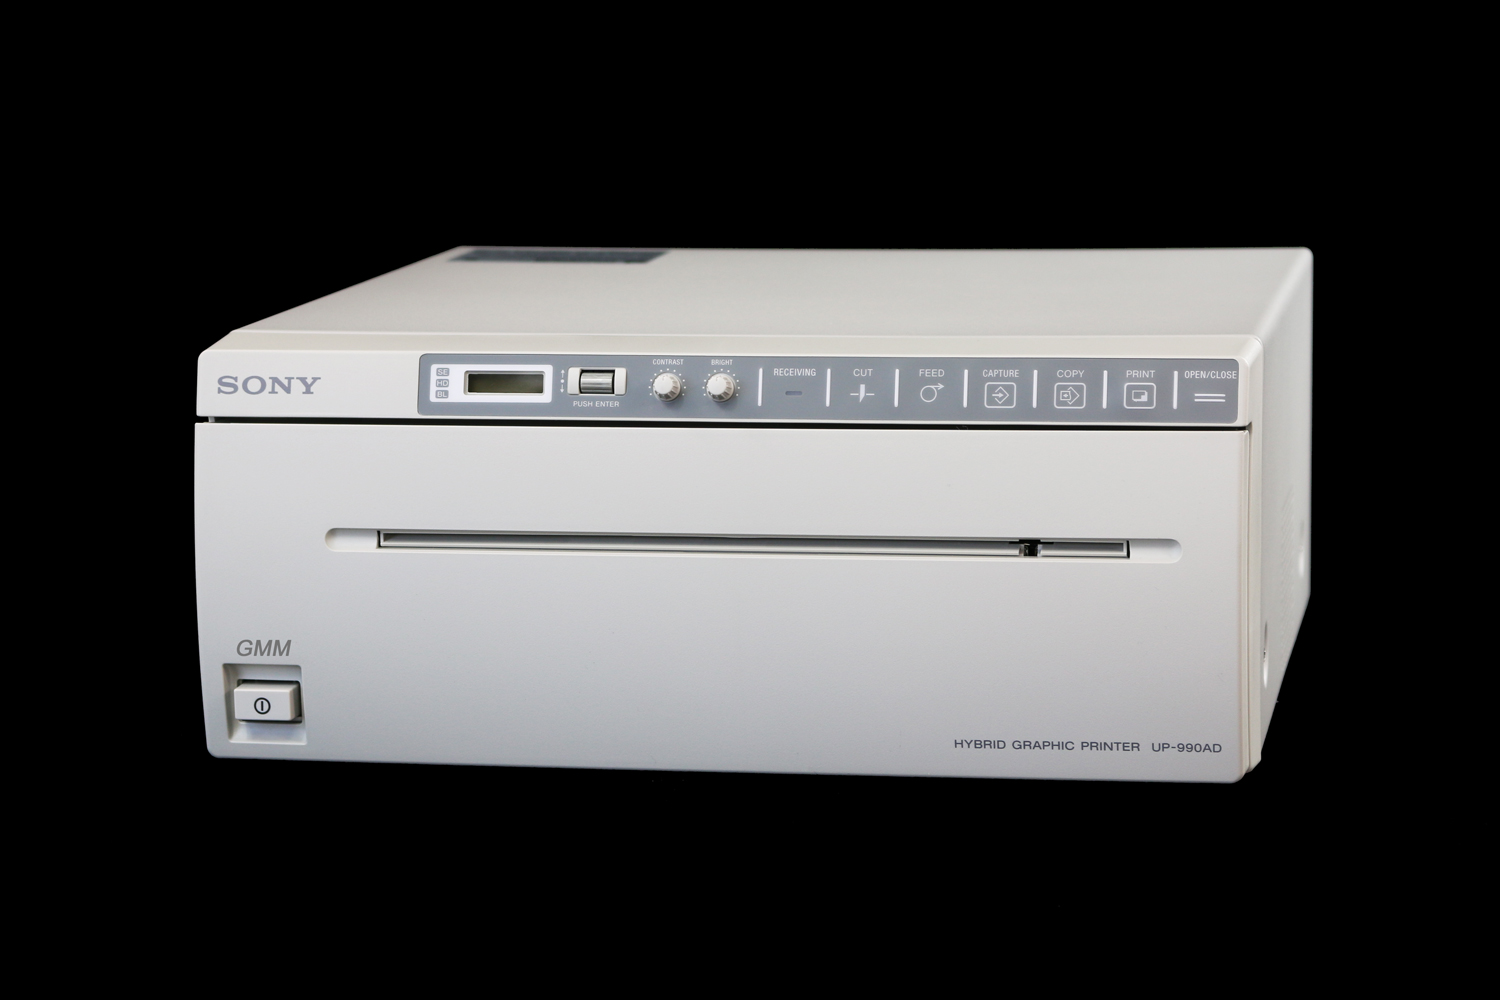 SONY Hybrid Graphic Printer UP-990AD